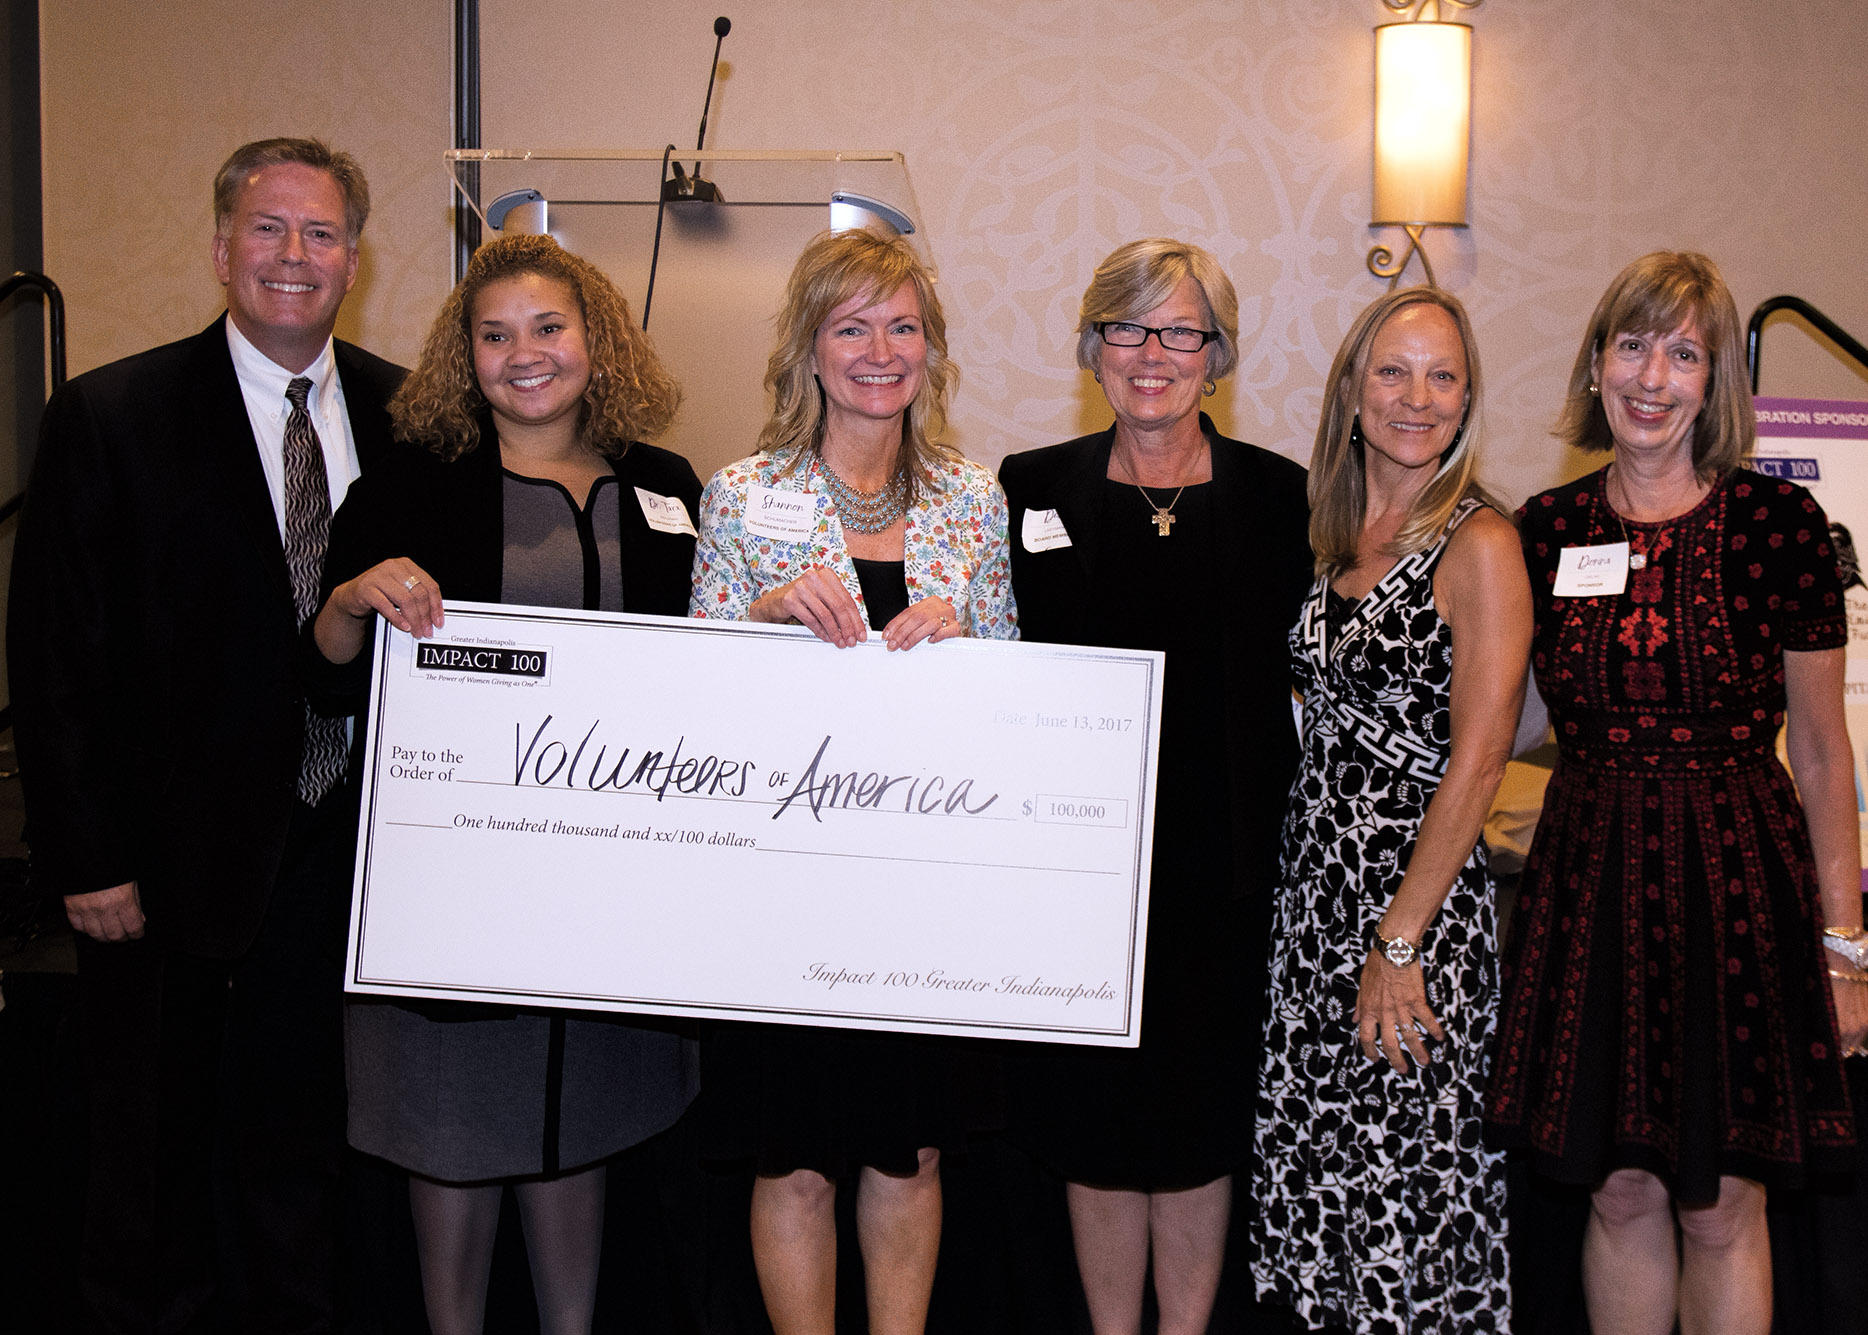 Volunteers of America of Indiana receives $100,000 from Impact 100 Greater Indianapolis